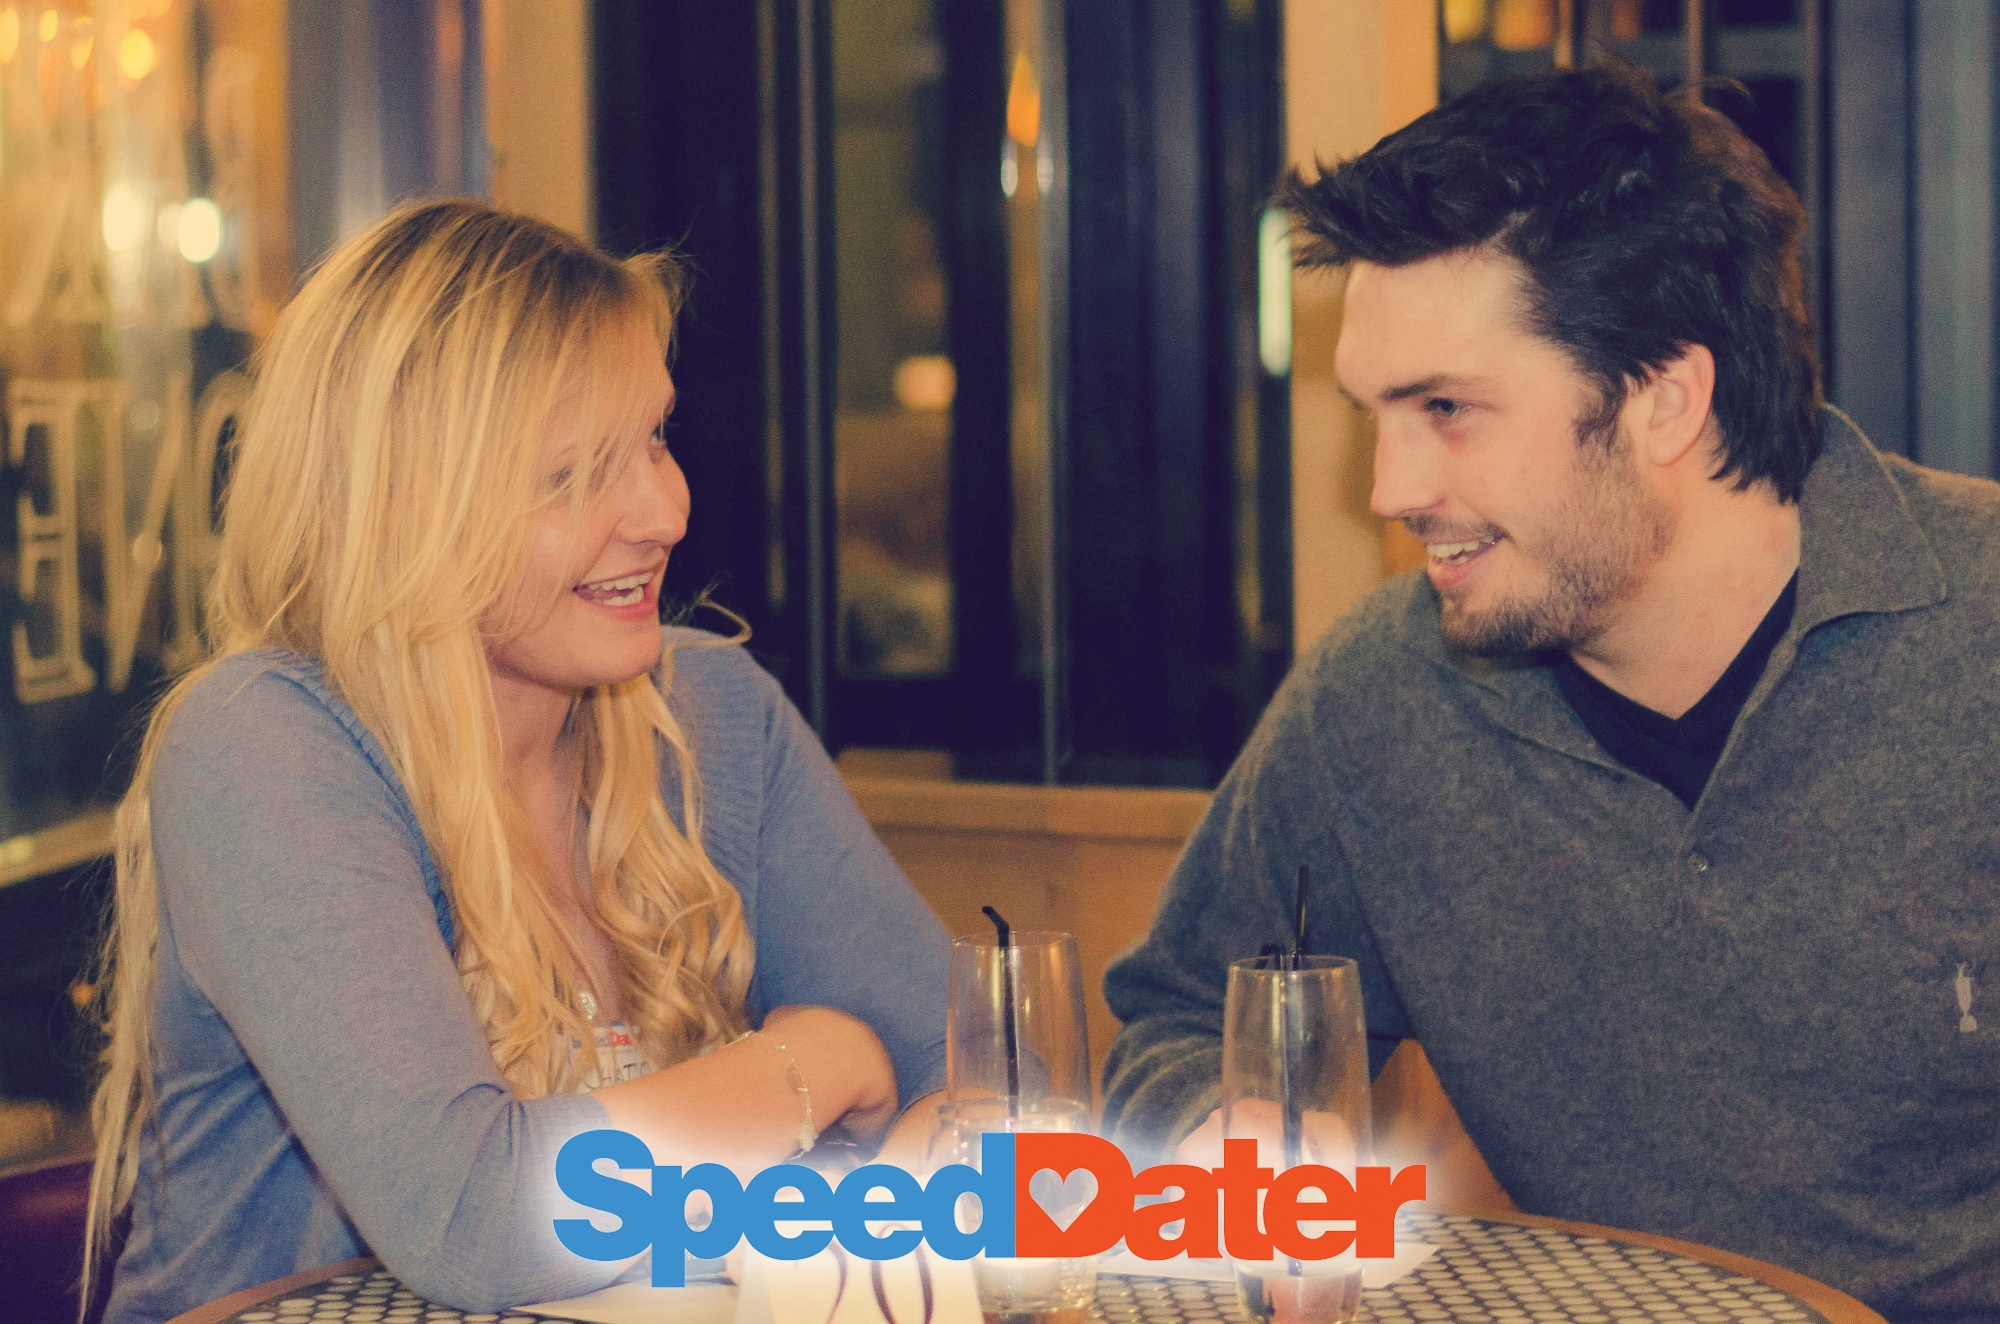 Speed dating in swansea dating in hull